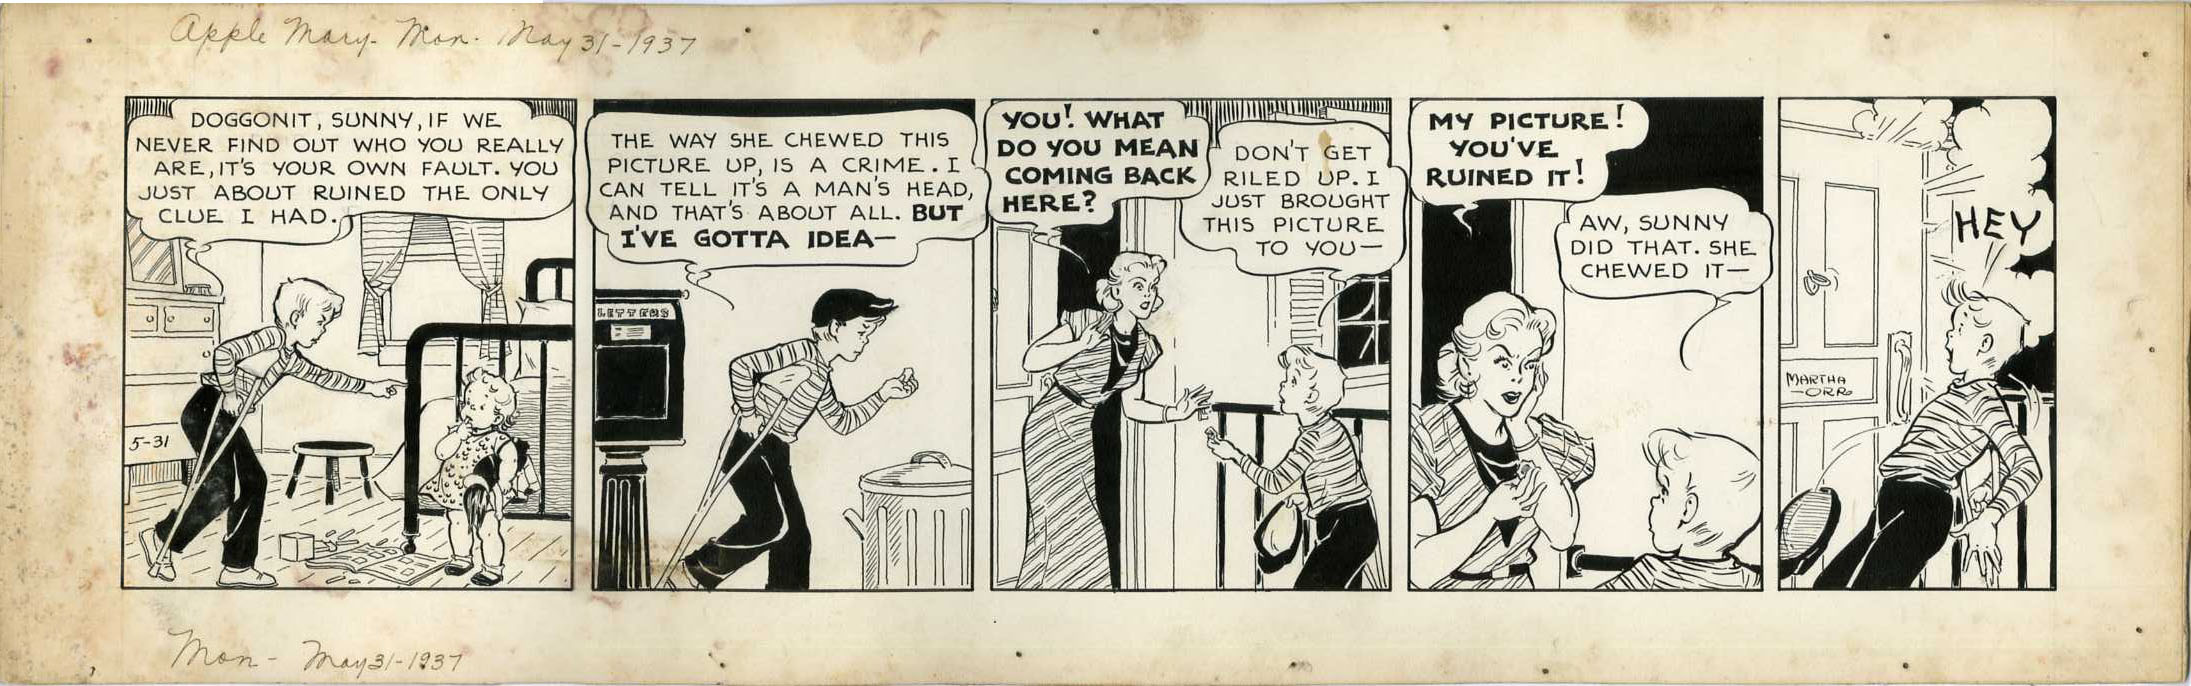 MARTHA ORR - APPLE MARY DAILY ORIGINAL ART 5-31-37 ONLY CLUE RUINED